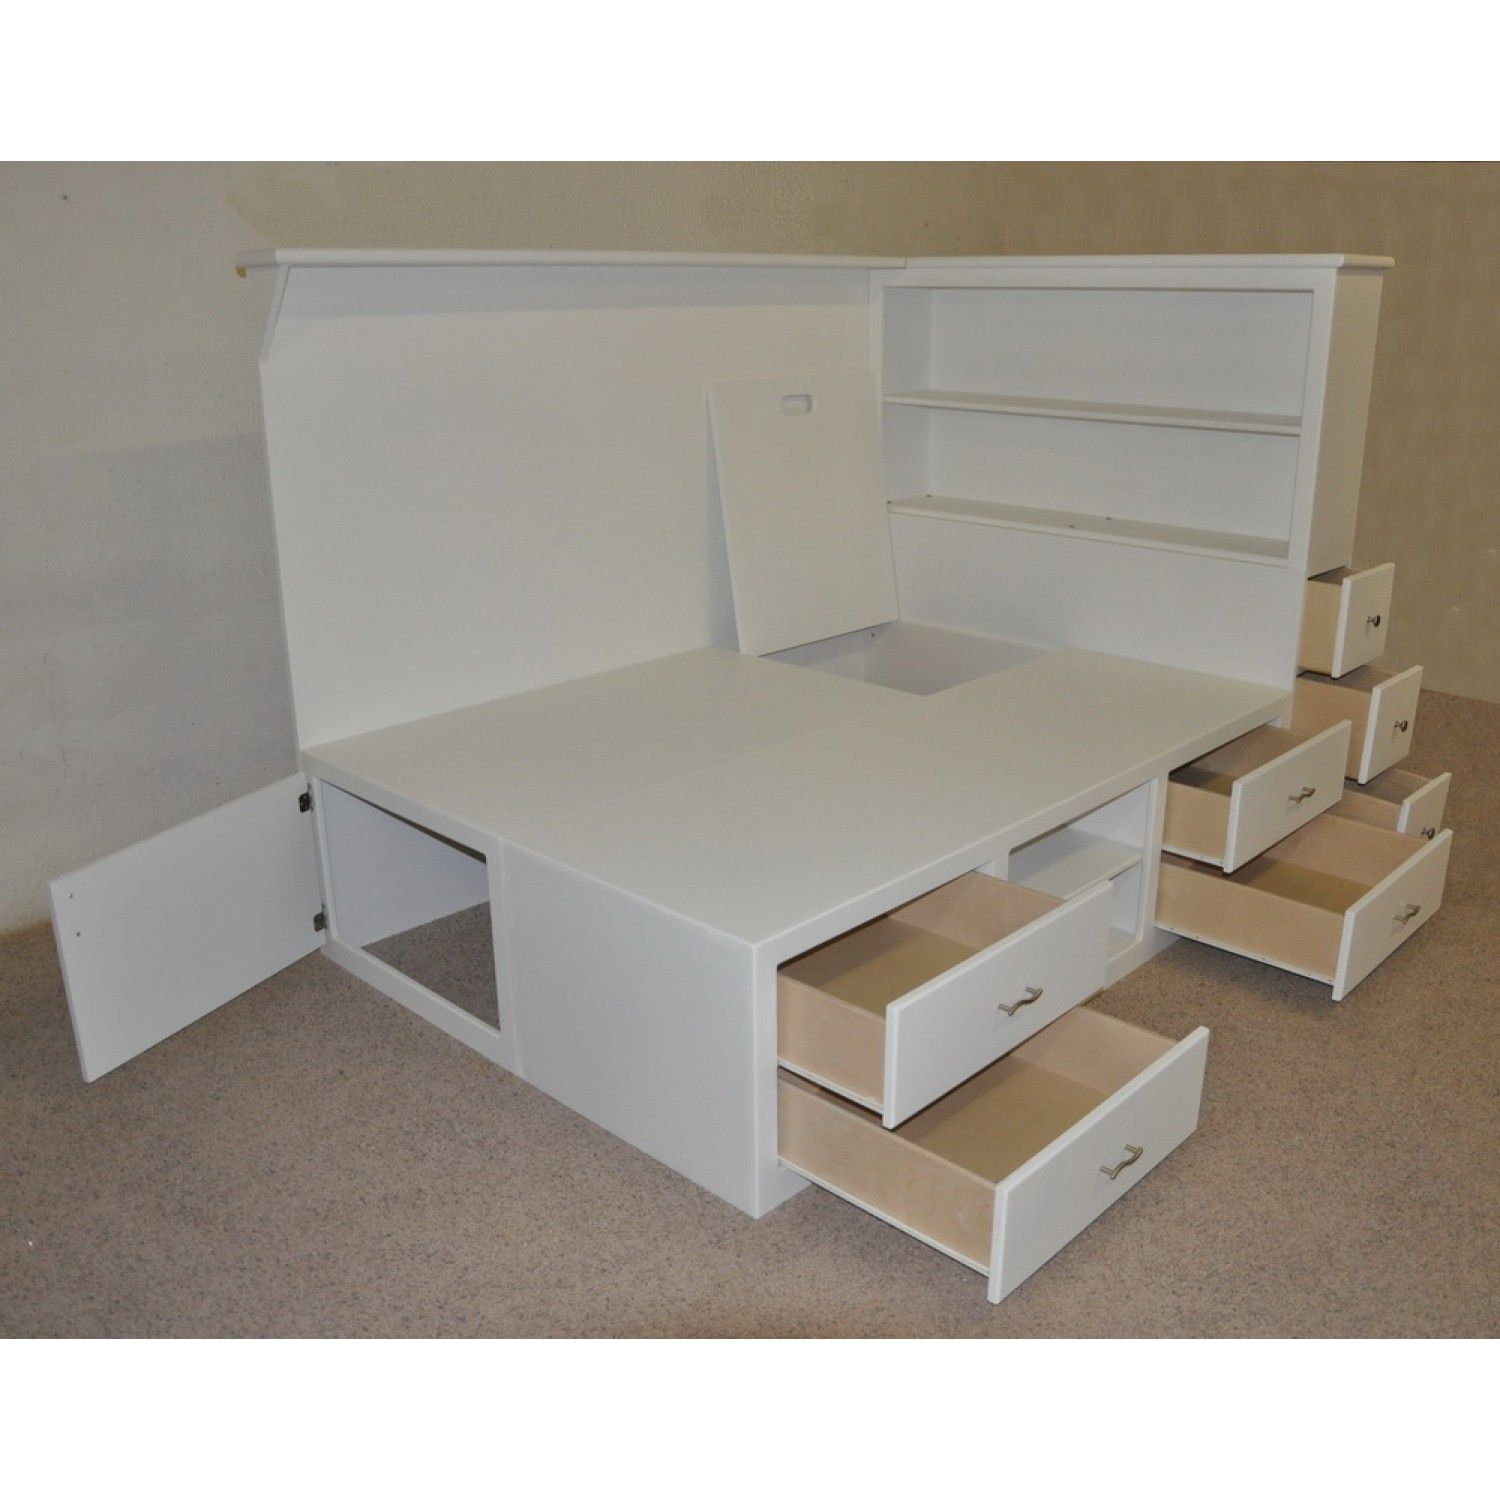 Diy Platform Bed Base Teen Beds With Storage Underneath Drawers Multiple